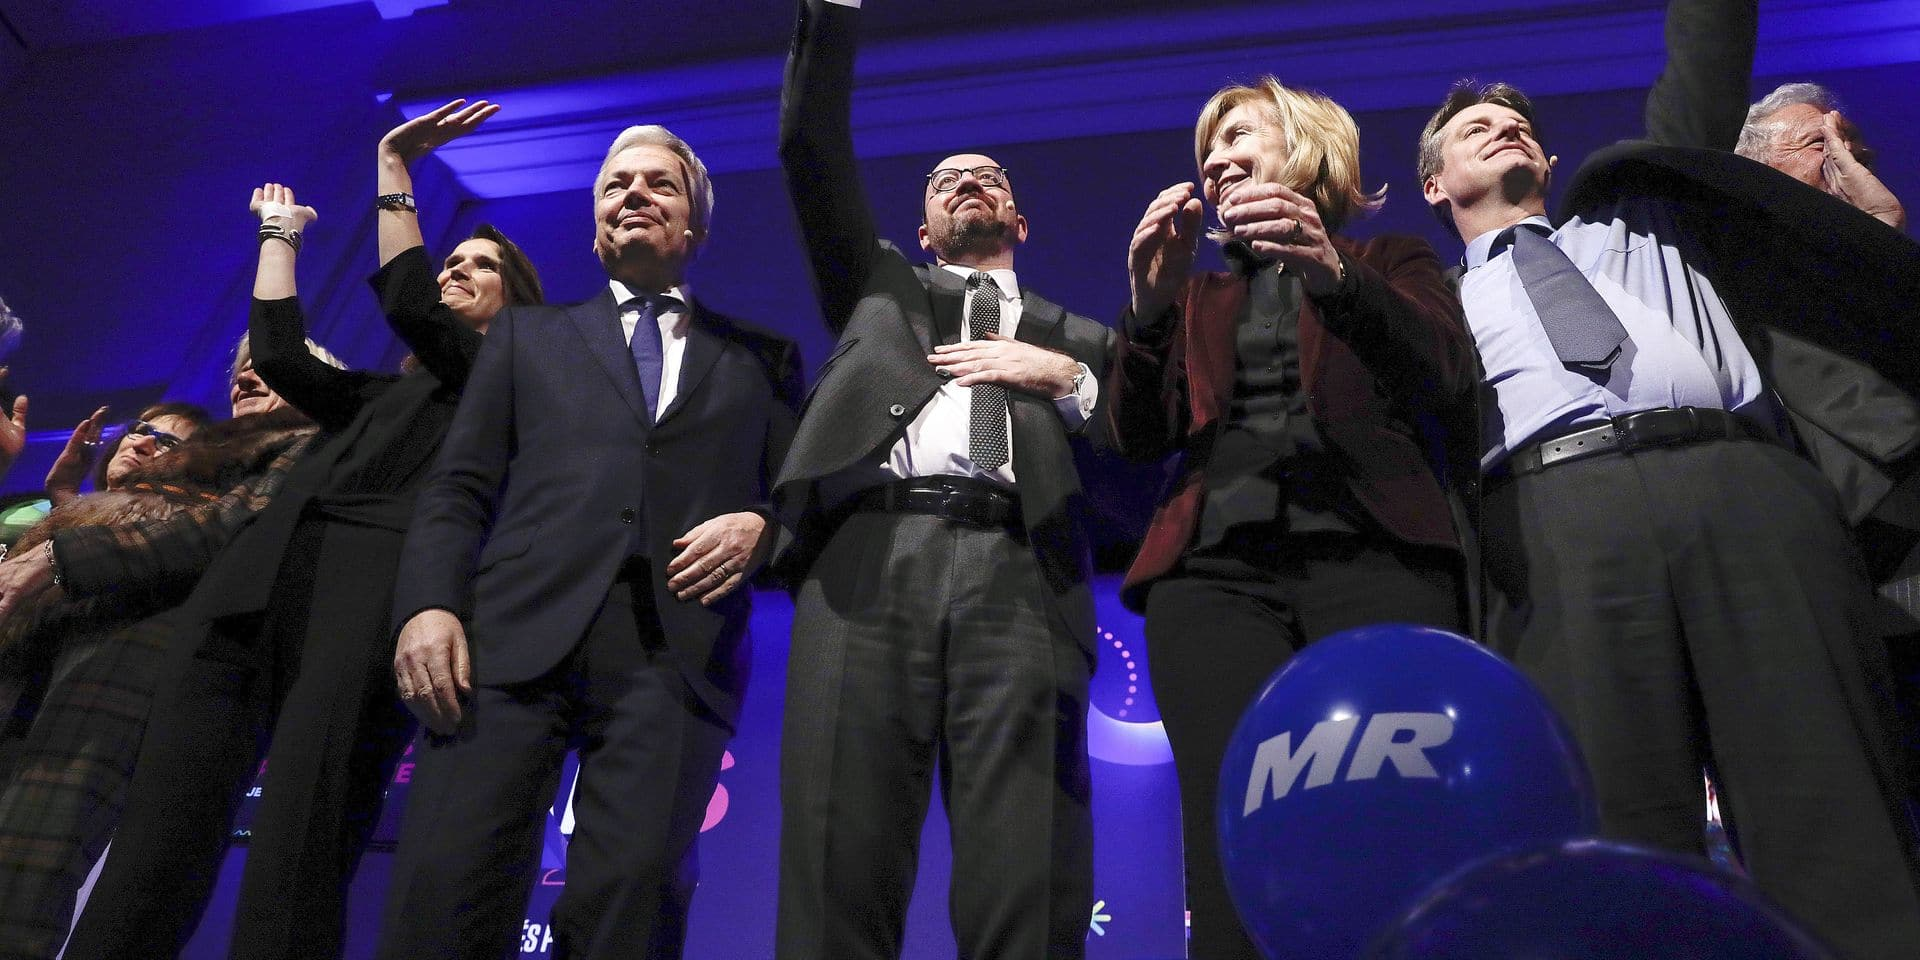 Minister of Budget Sophie Wilmes, Vice-Prime Minister and Foreign Minister Didier Reynders, Belgian Prime Minister Charles Michel, MR's Francoise Schepmans and MR chairman Olivier Chastel pictured during the new year's reception of the Brussels' branch of French-speaking liberal party MR, Thursday 18 January 2018. BELGA PHOTO THIERRY ROGE